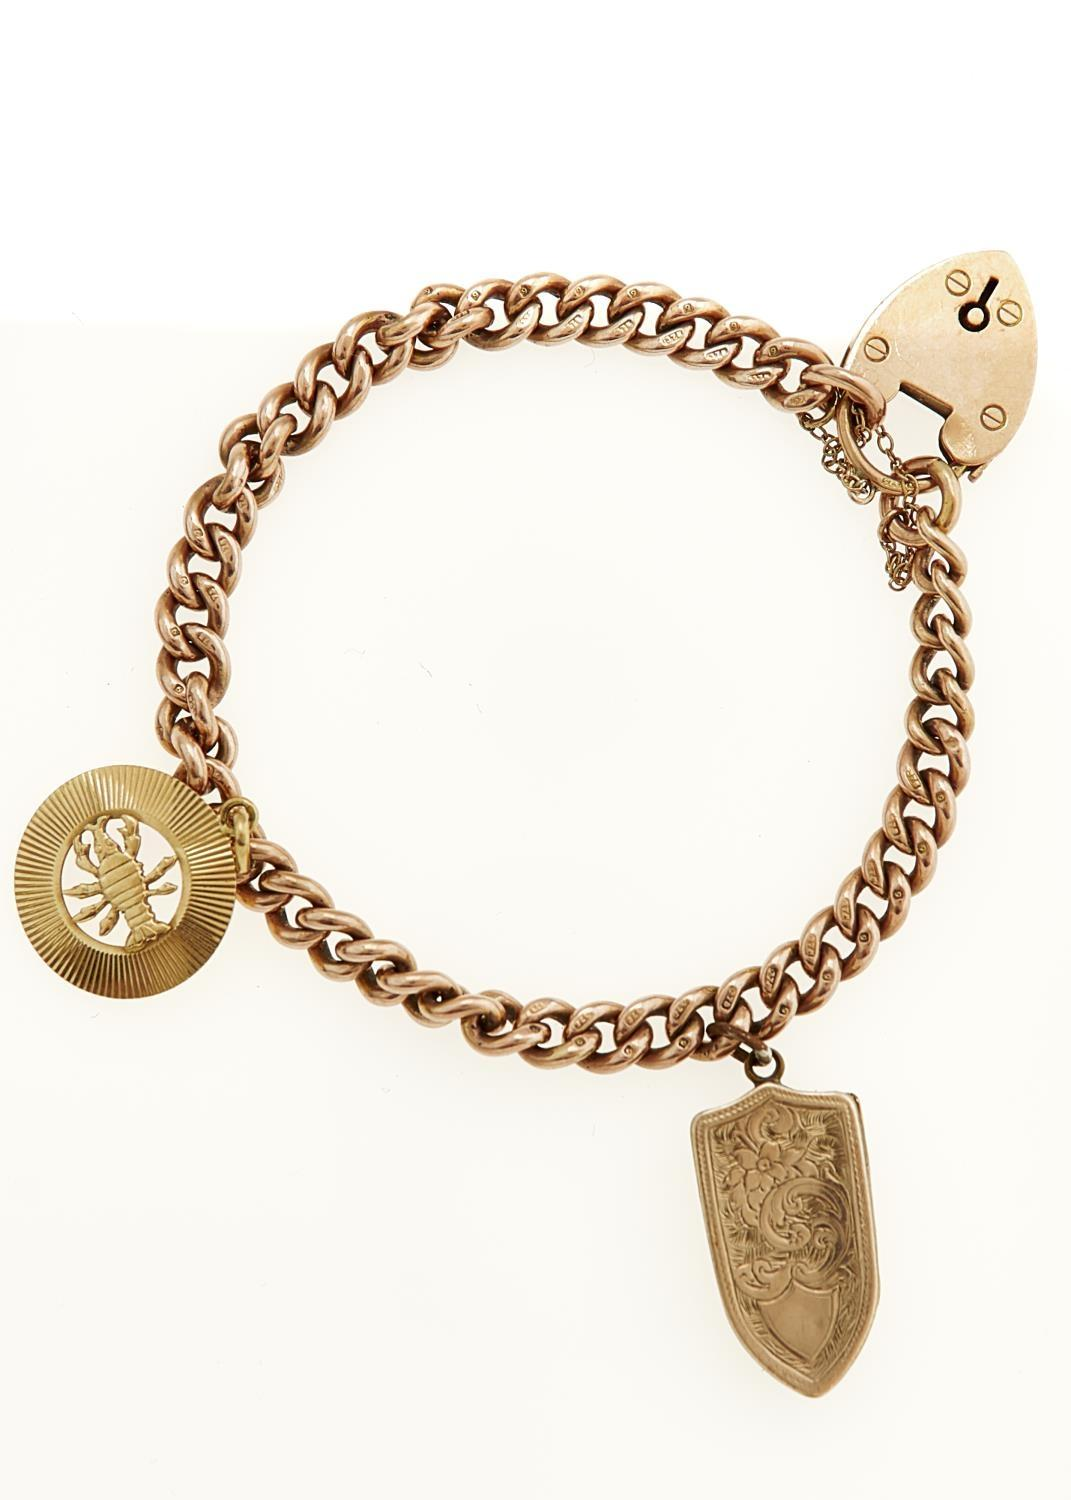 A 9CT GOLD CURB BRACELET AND PADLOCK MOUNTED WITH A GOLD SCORPION CHARM AND BASE METAL LOCKET,